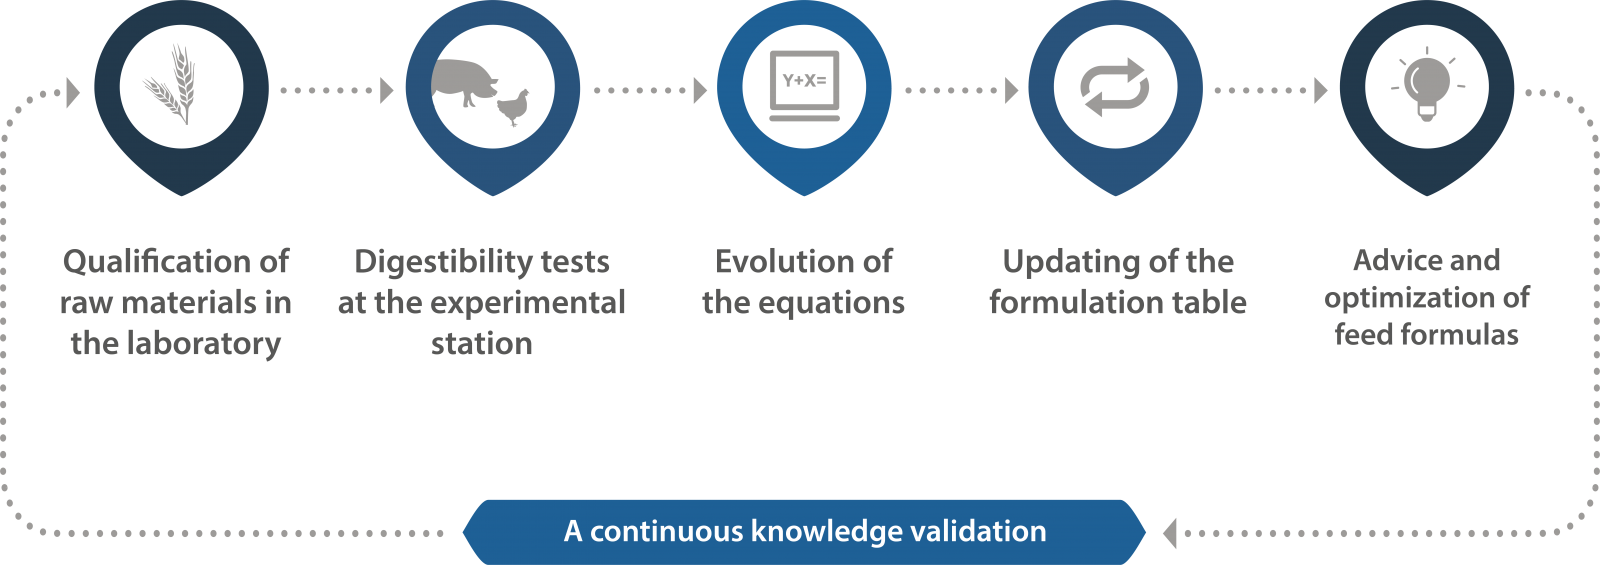 A continuous knowledge validation